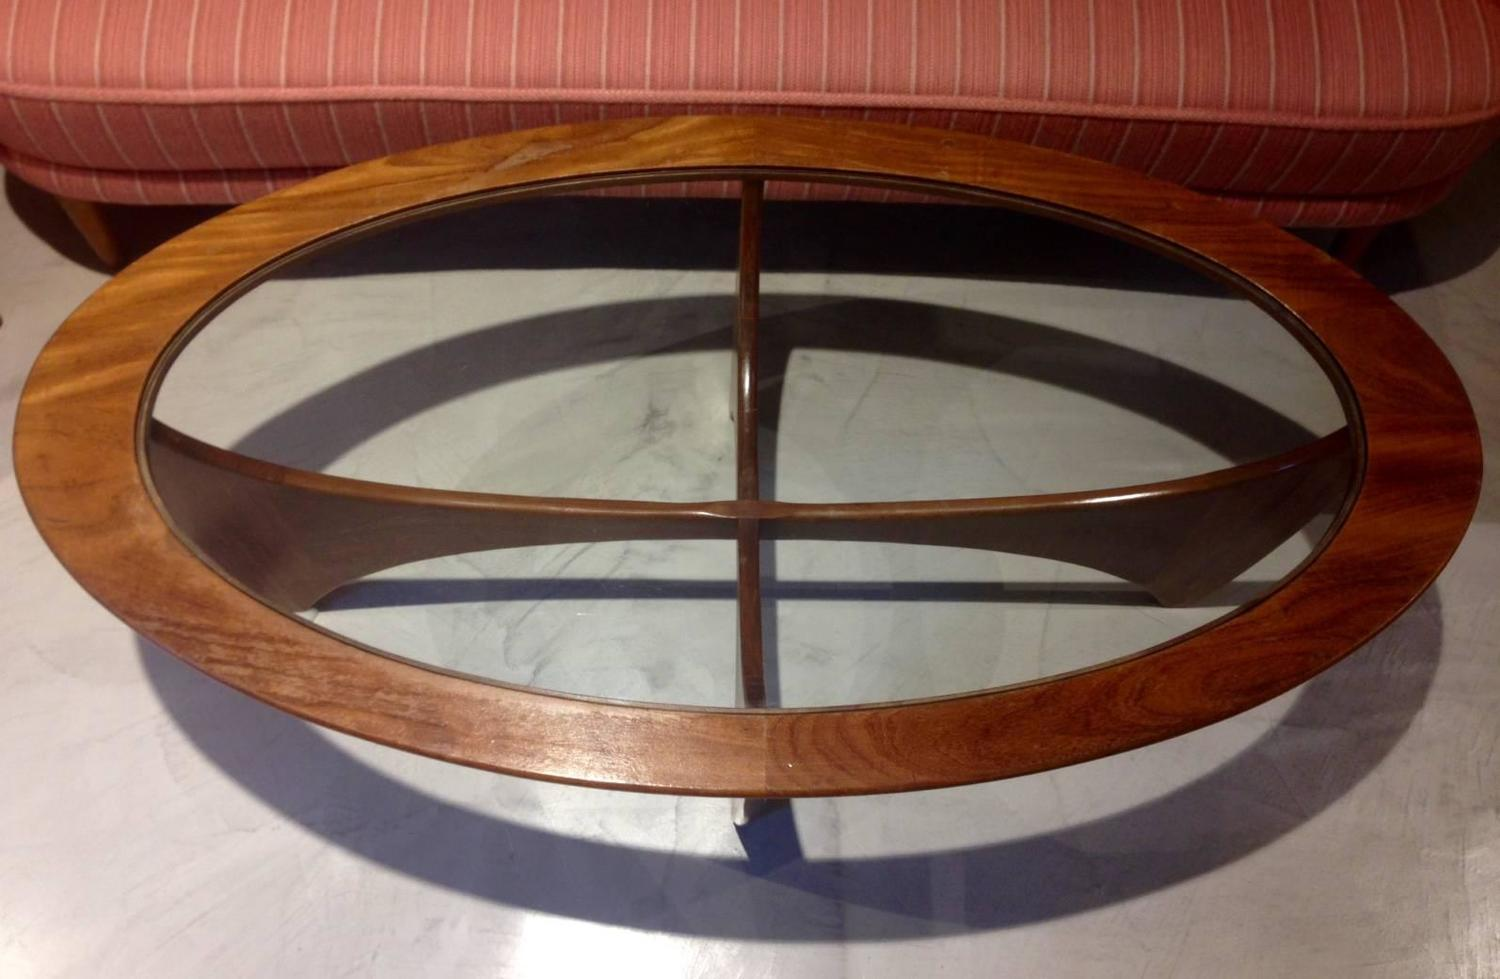 Oval Teak Coffee Table With Glass Top By G Plan For Sale At 1stdibs